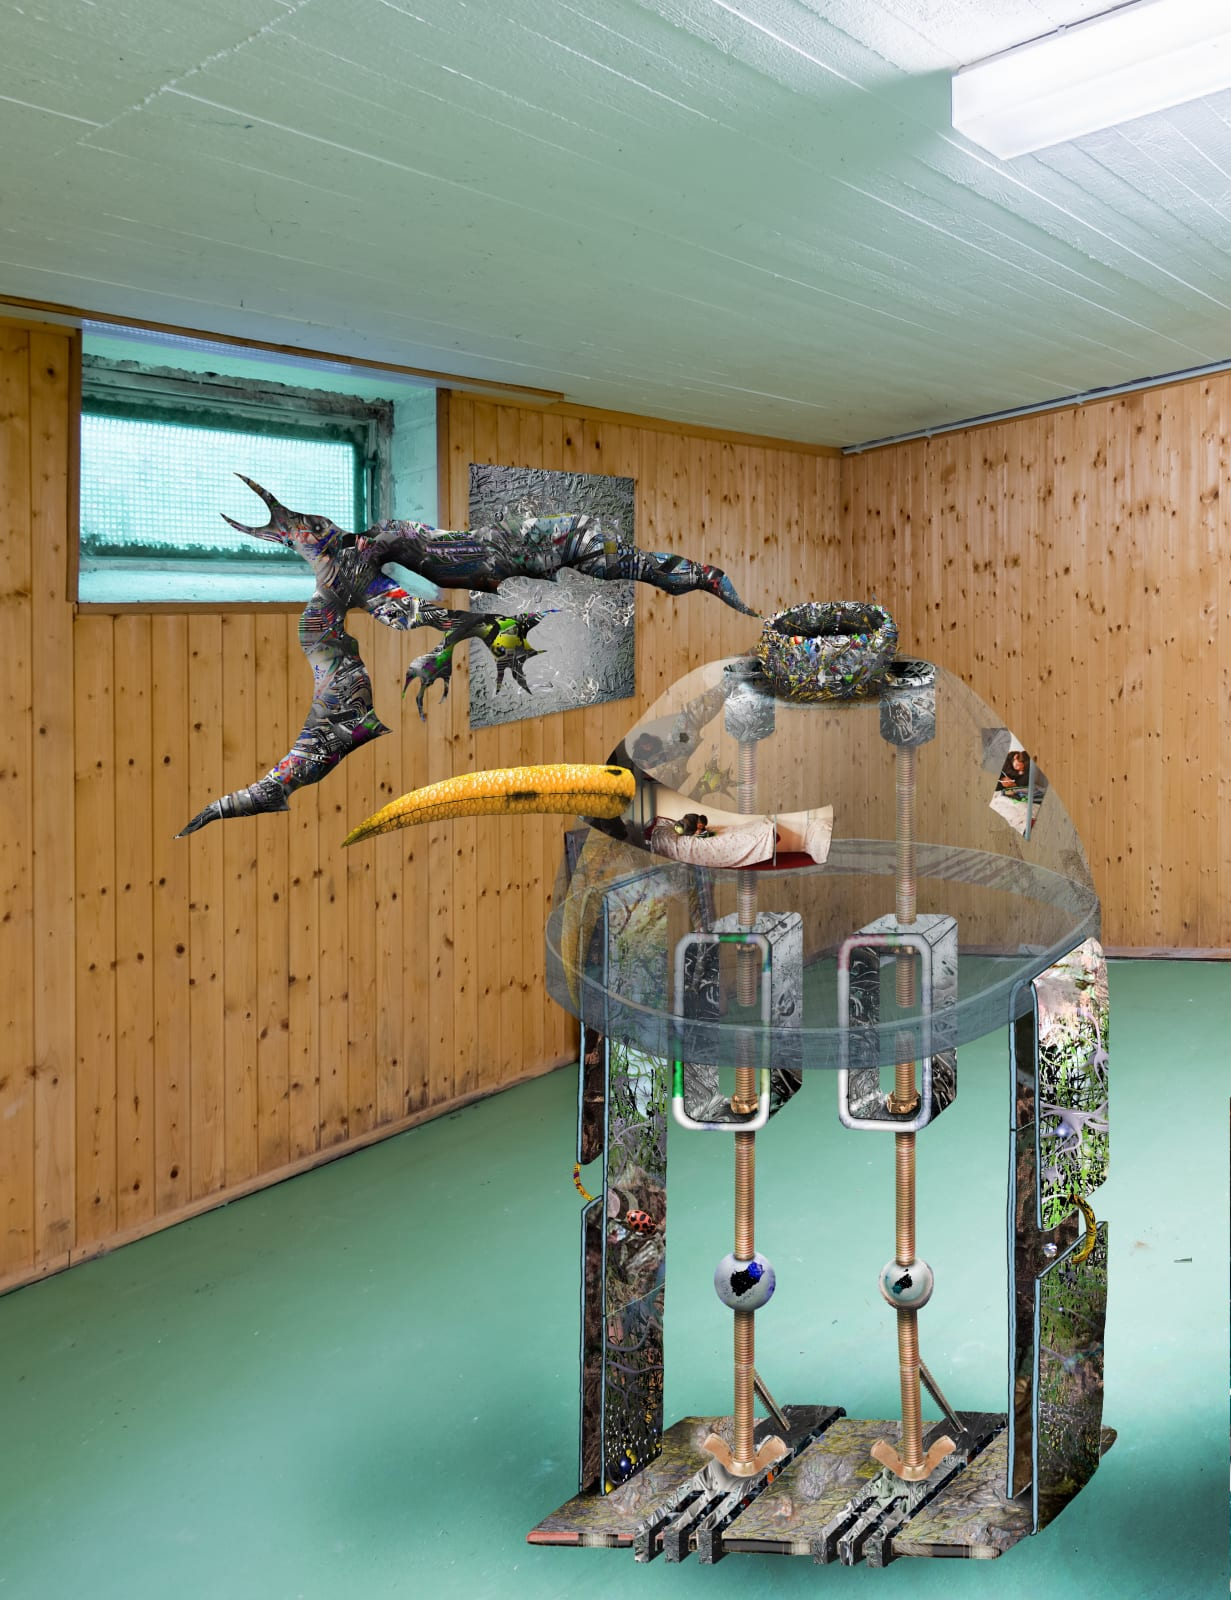 Jacques Louis Vidal, Im like a Bird, 2020, digital collage, dimensions variable.